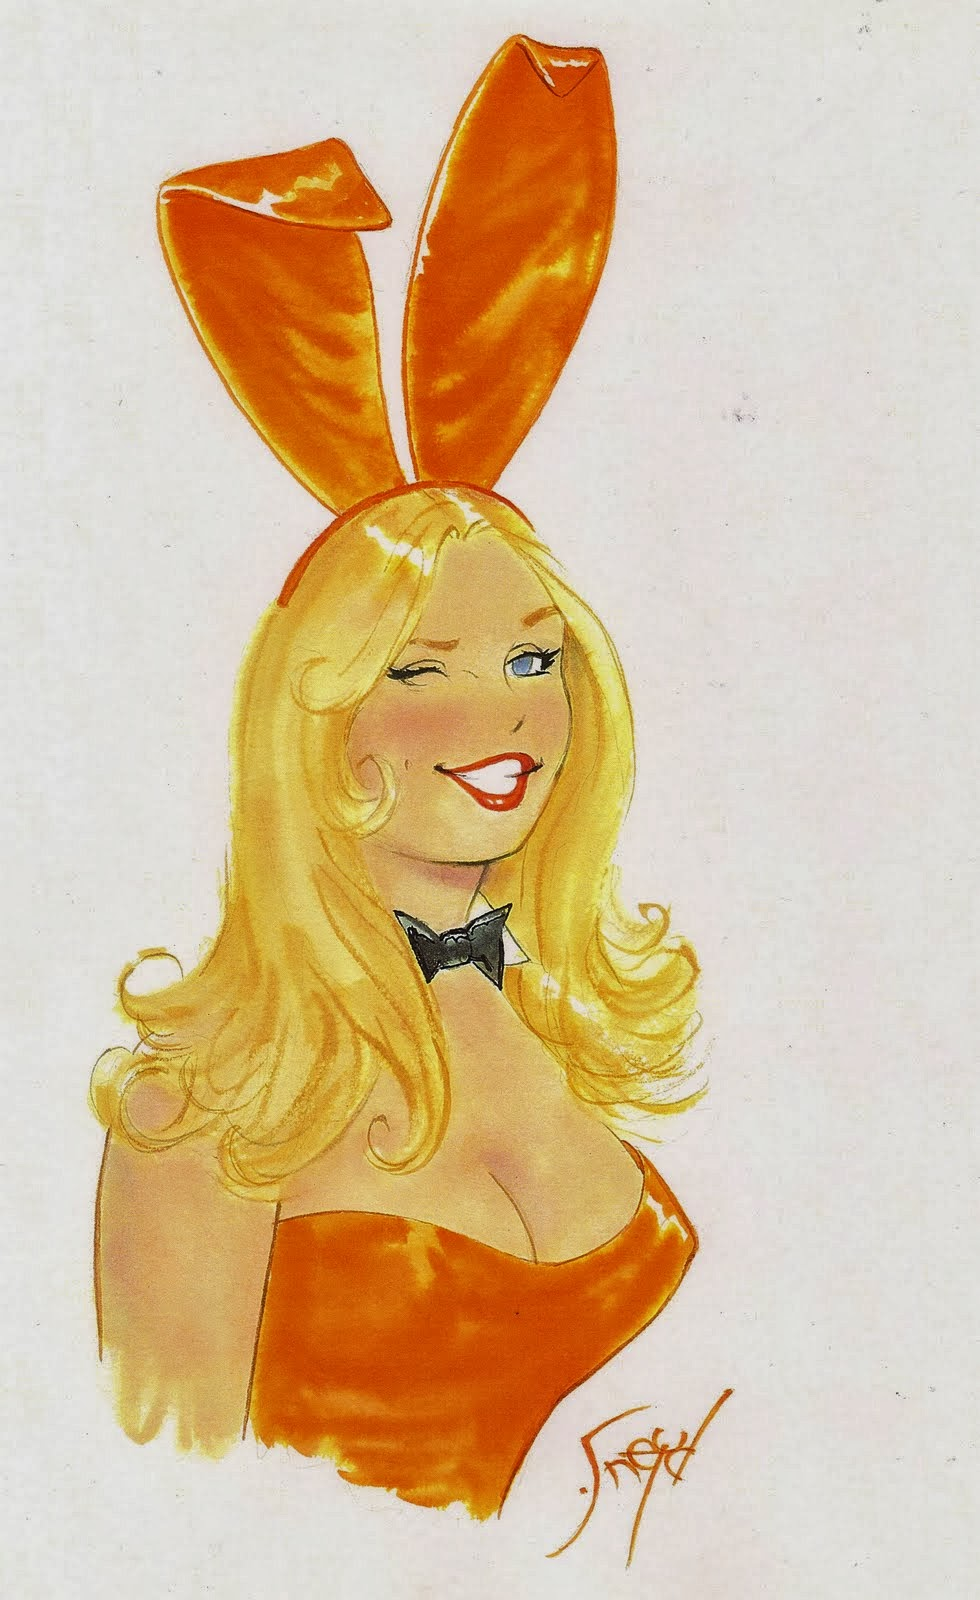 Doug Sneyd Playboy Cartoons 1960s Vintage Arts Gallery